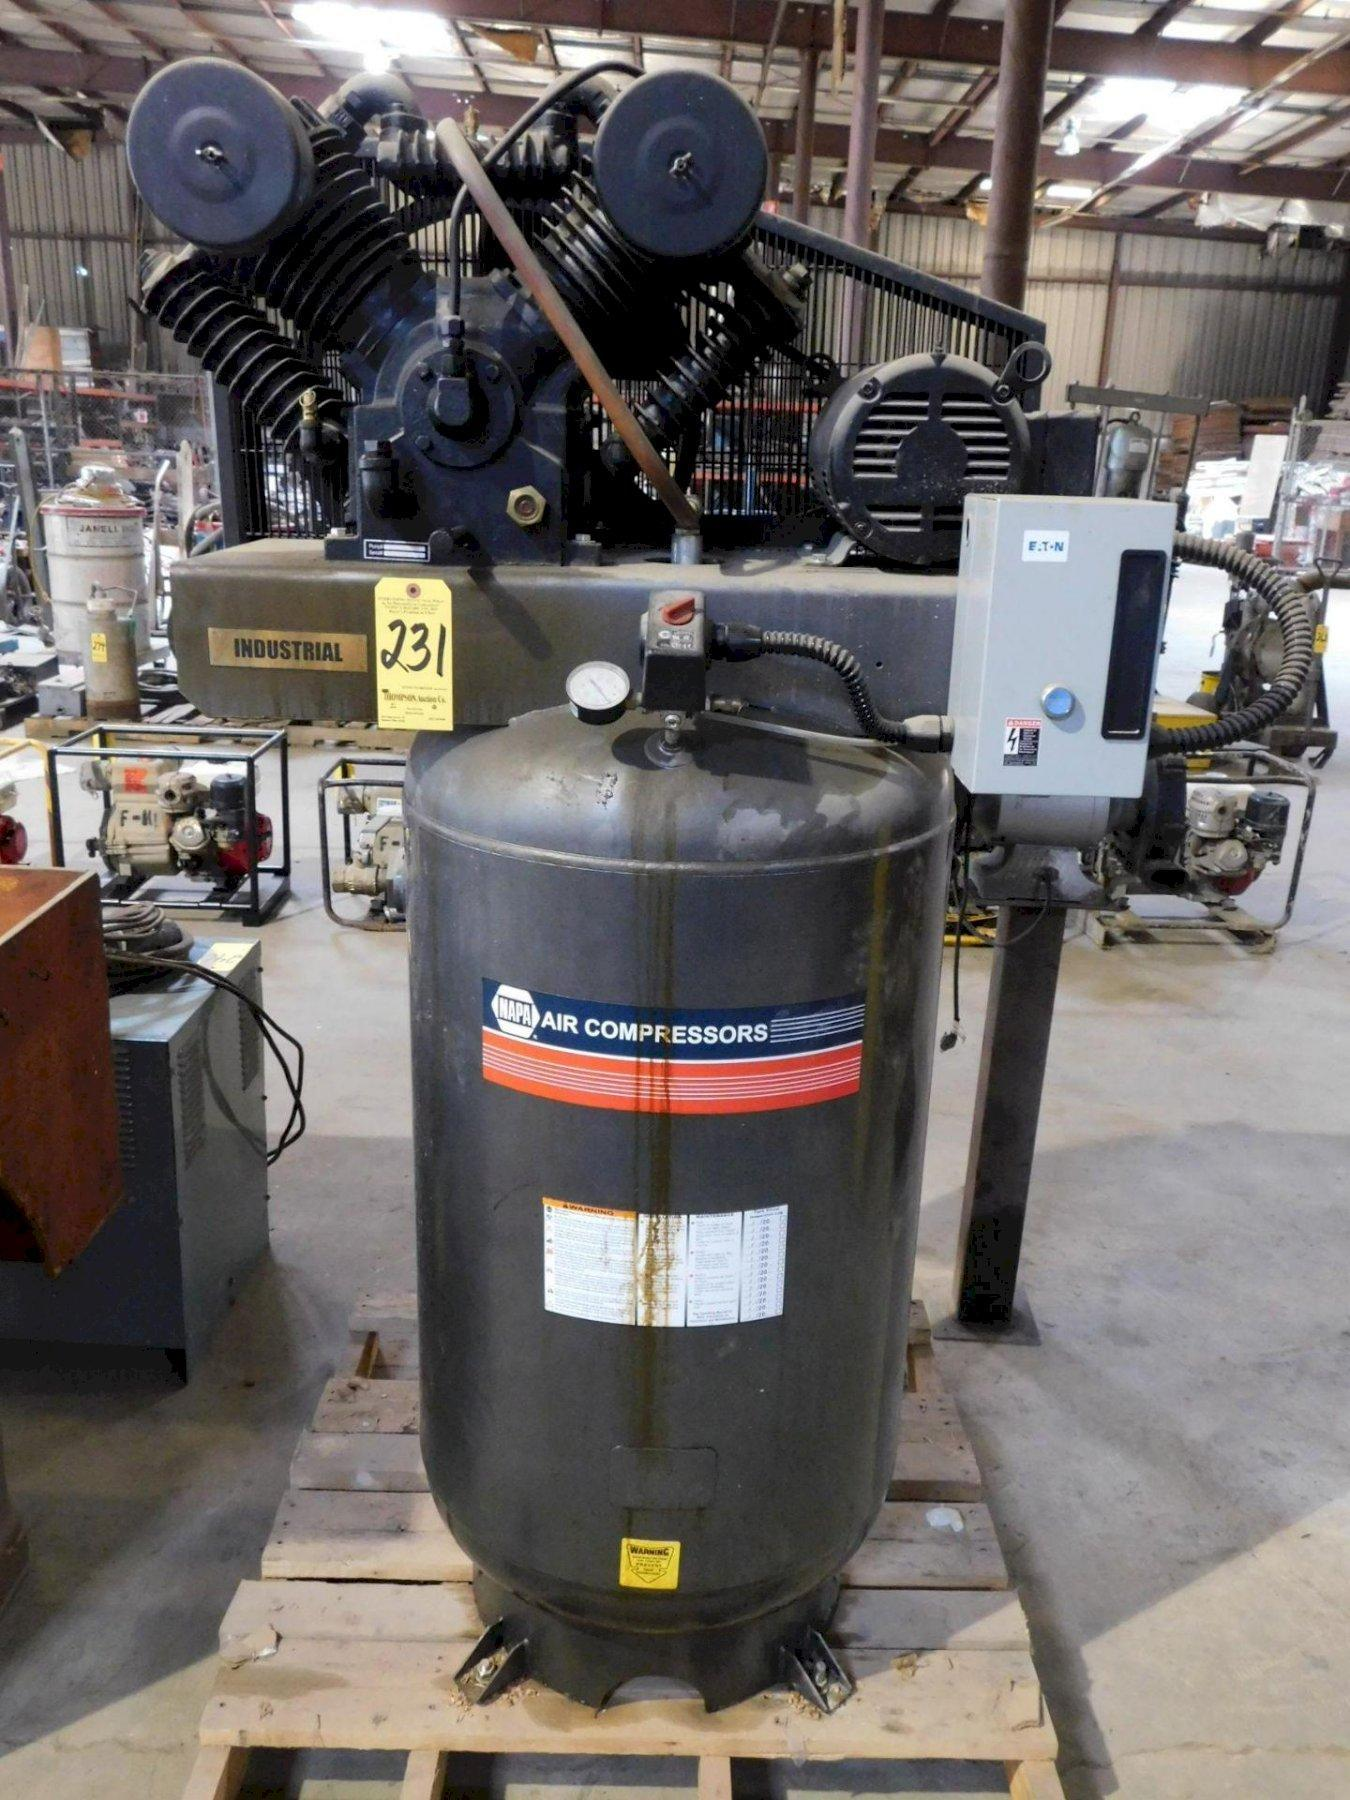 7-1/2 HORSEPOWER NAPA VERTICAL AIR COMPRESSOR: STOCK #73144